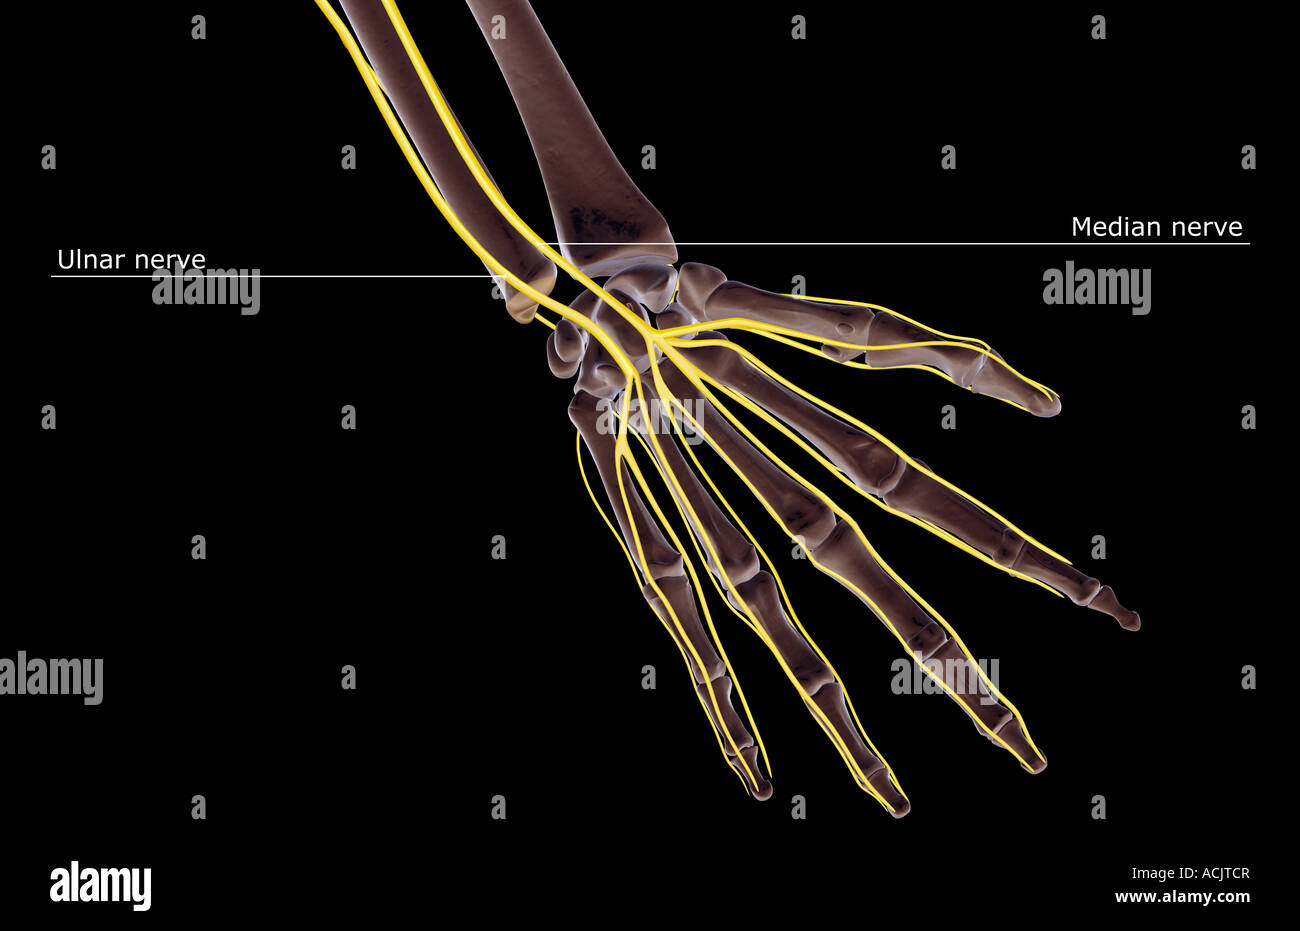 The nerves of the hand Stock Photo: 13173142 - Alamy